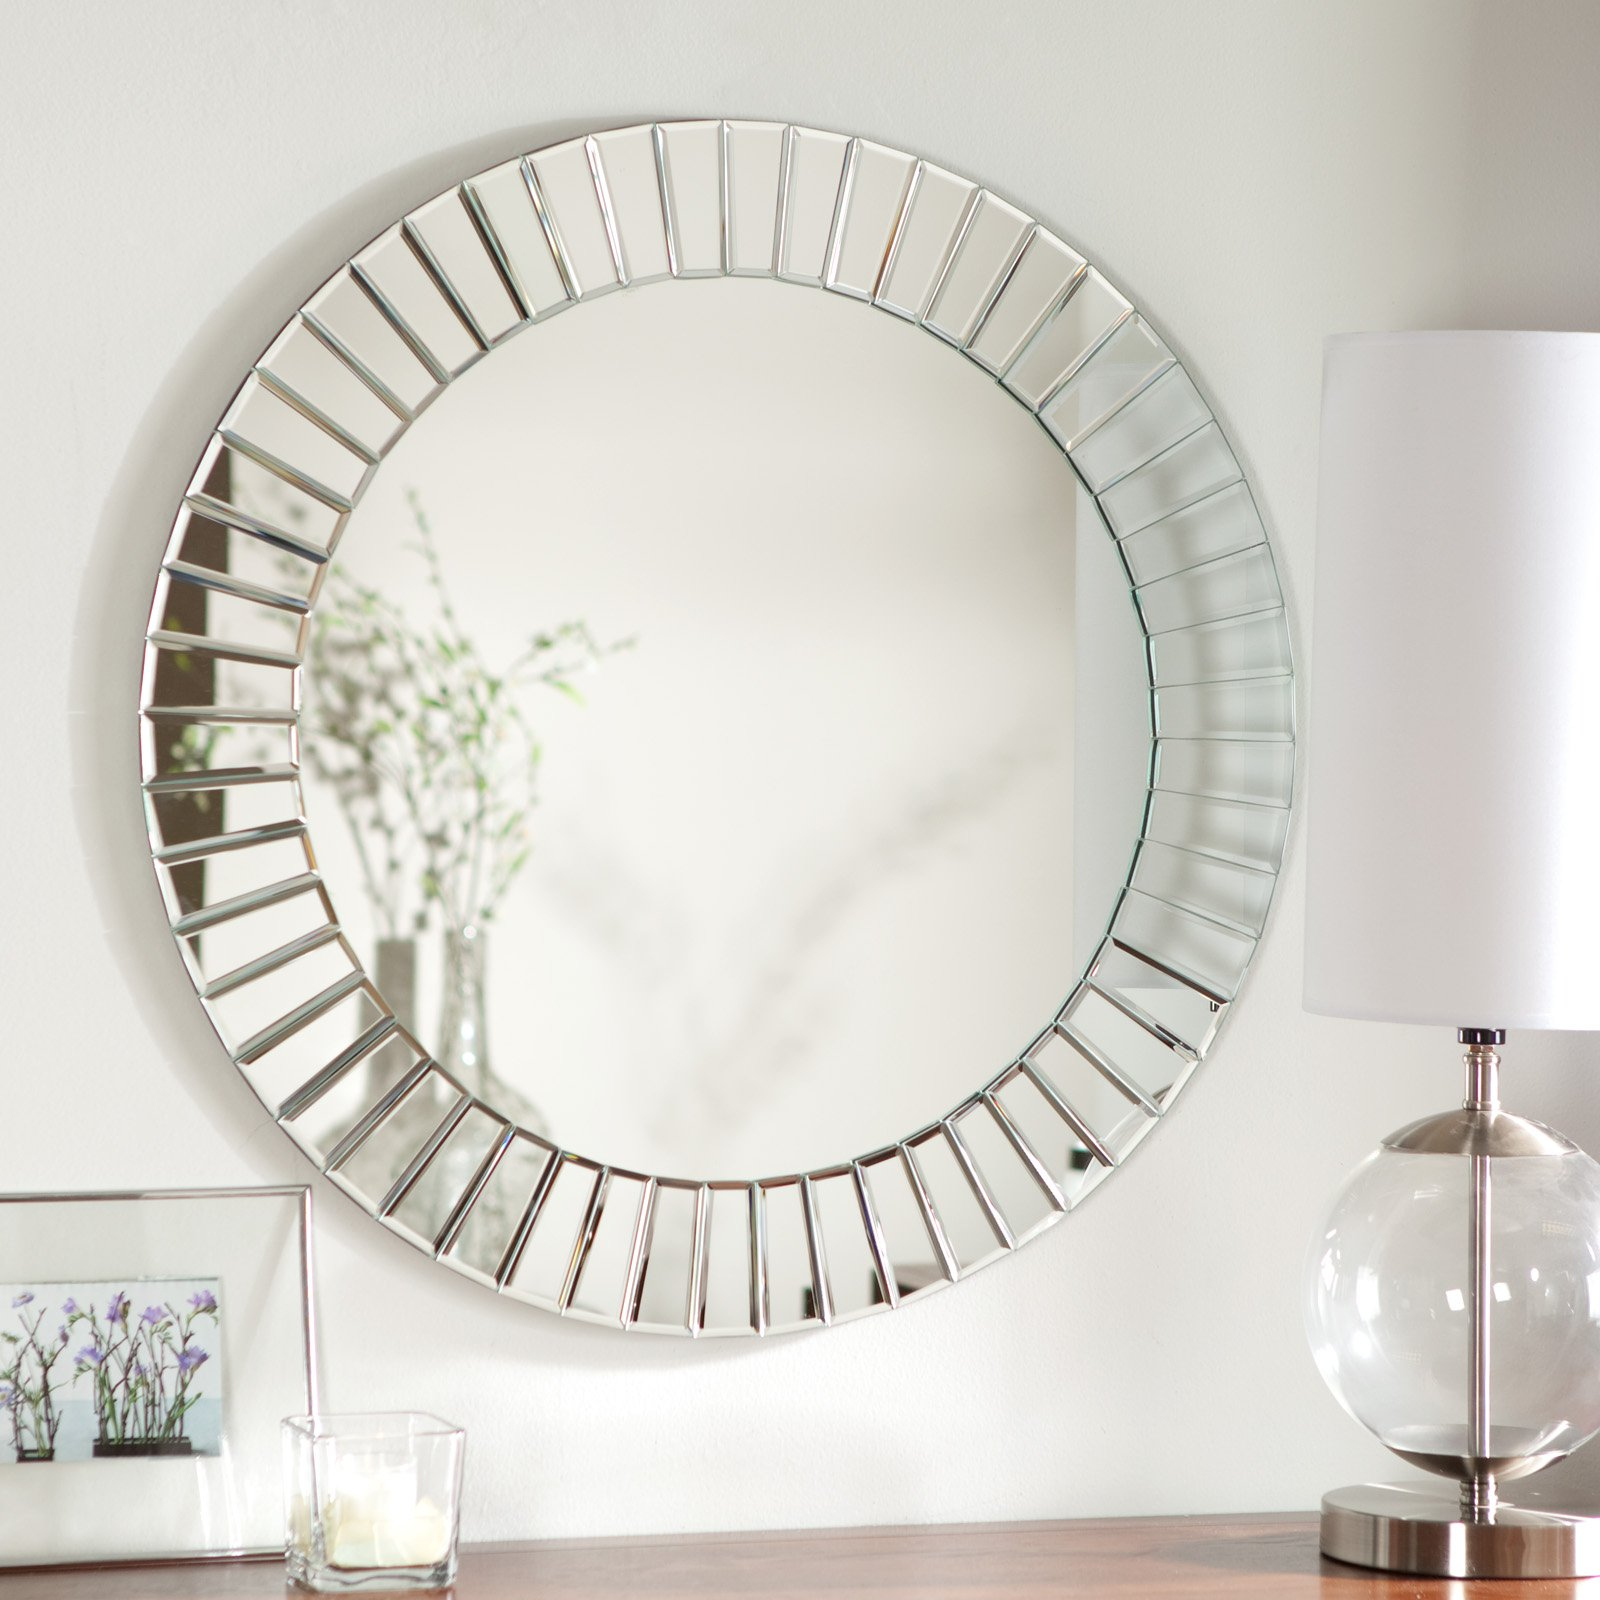 Remarkable Decorative Beveled Wall Mirrors Frame Large Three Diy Pertaining To Fashionable Oval Full Length Wall Mirrors (View 5 of 20)